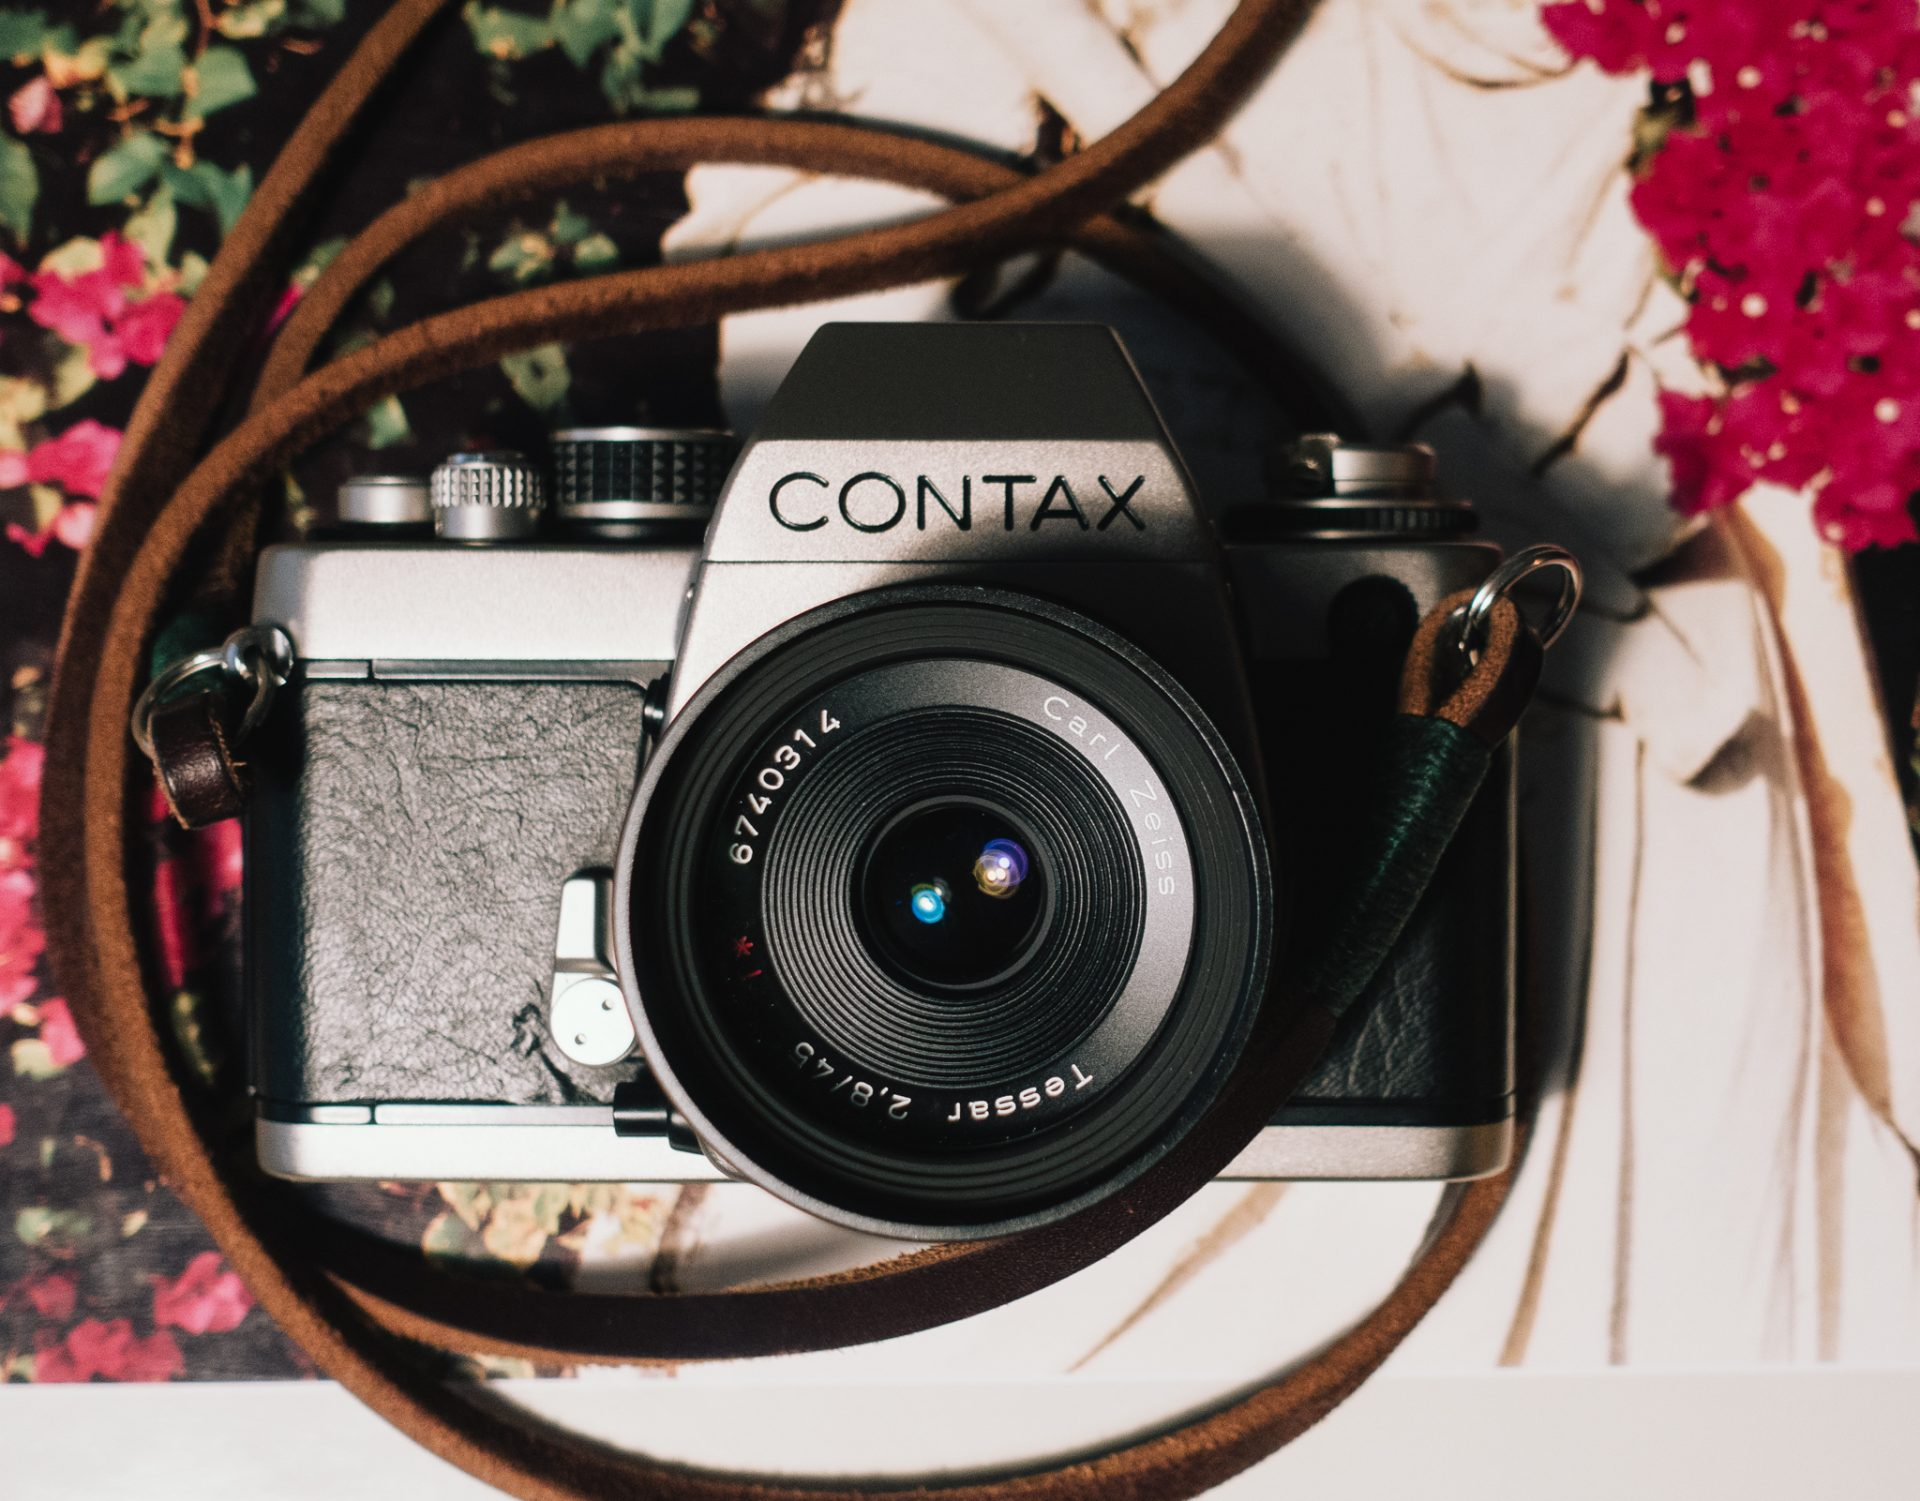 Contax S2 front